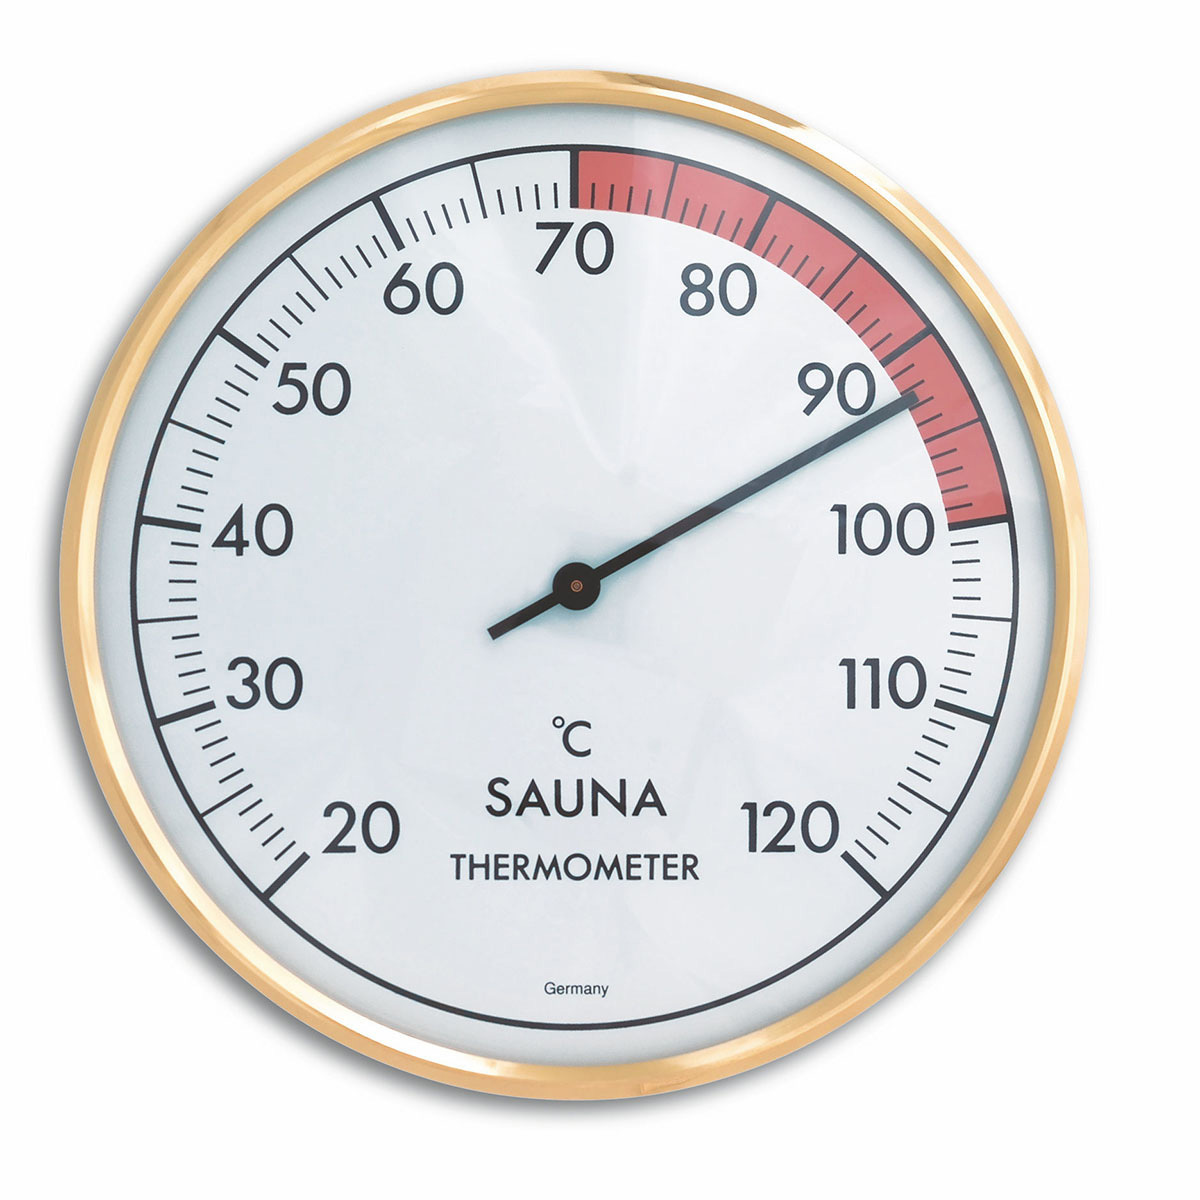 40-1011-analoges-sauna-thermometer-mit-metallring-1200x1200px.jpg